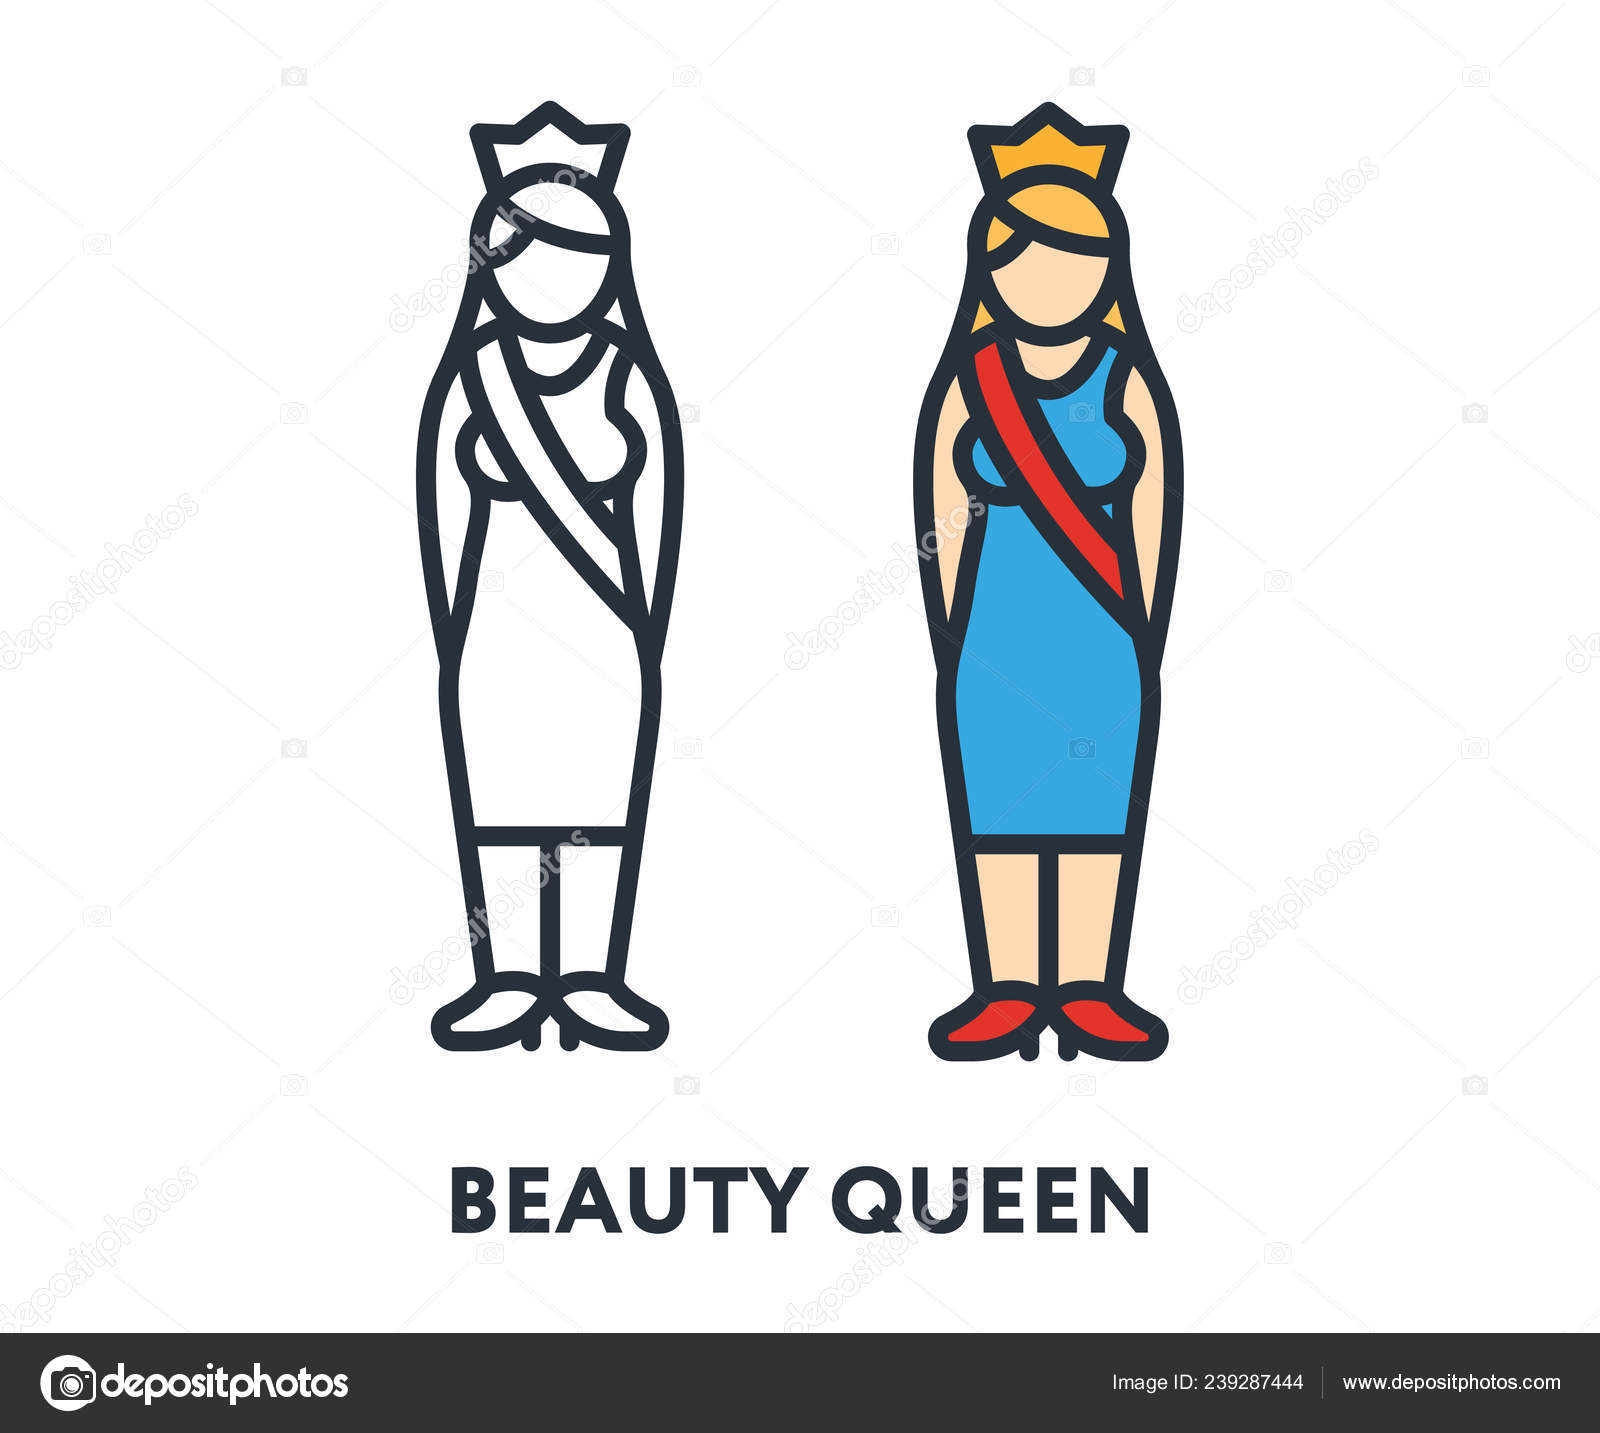 ᐈ Beauty Queen Cartoon Stock Backgrounds Royalty Free Beauty Pageant Cartoon Images Download On Depositphotos